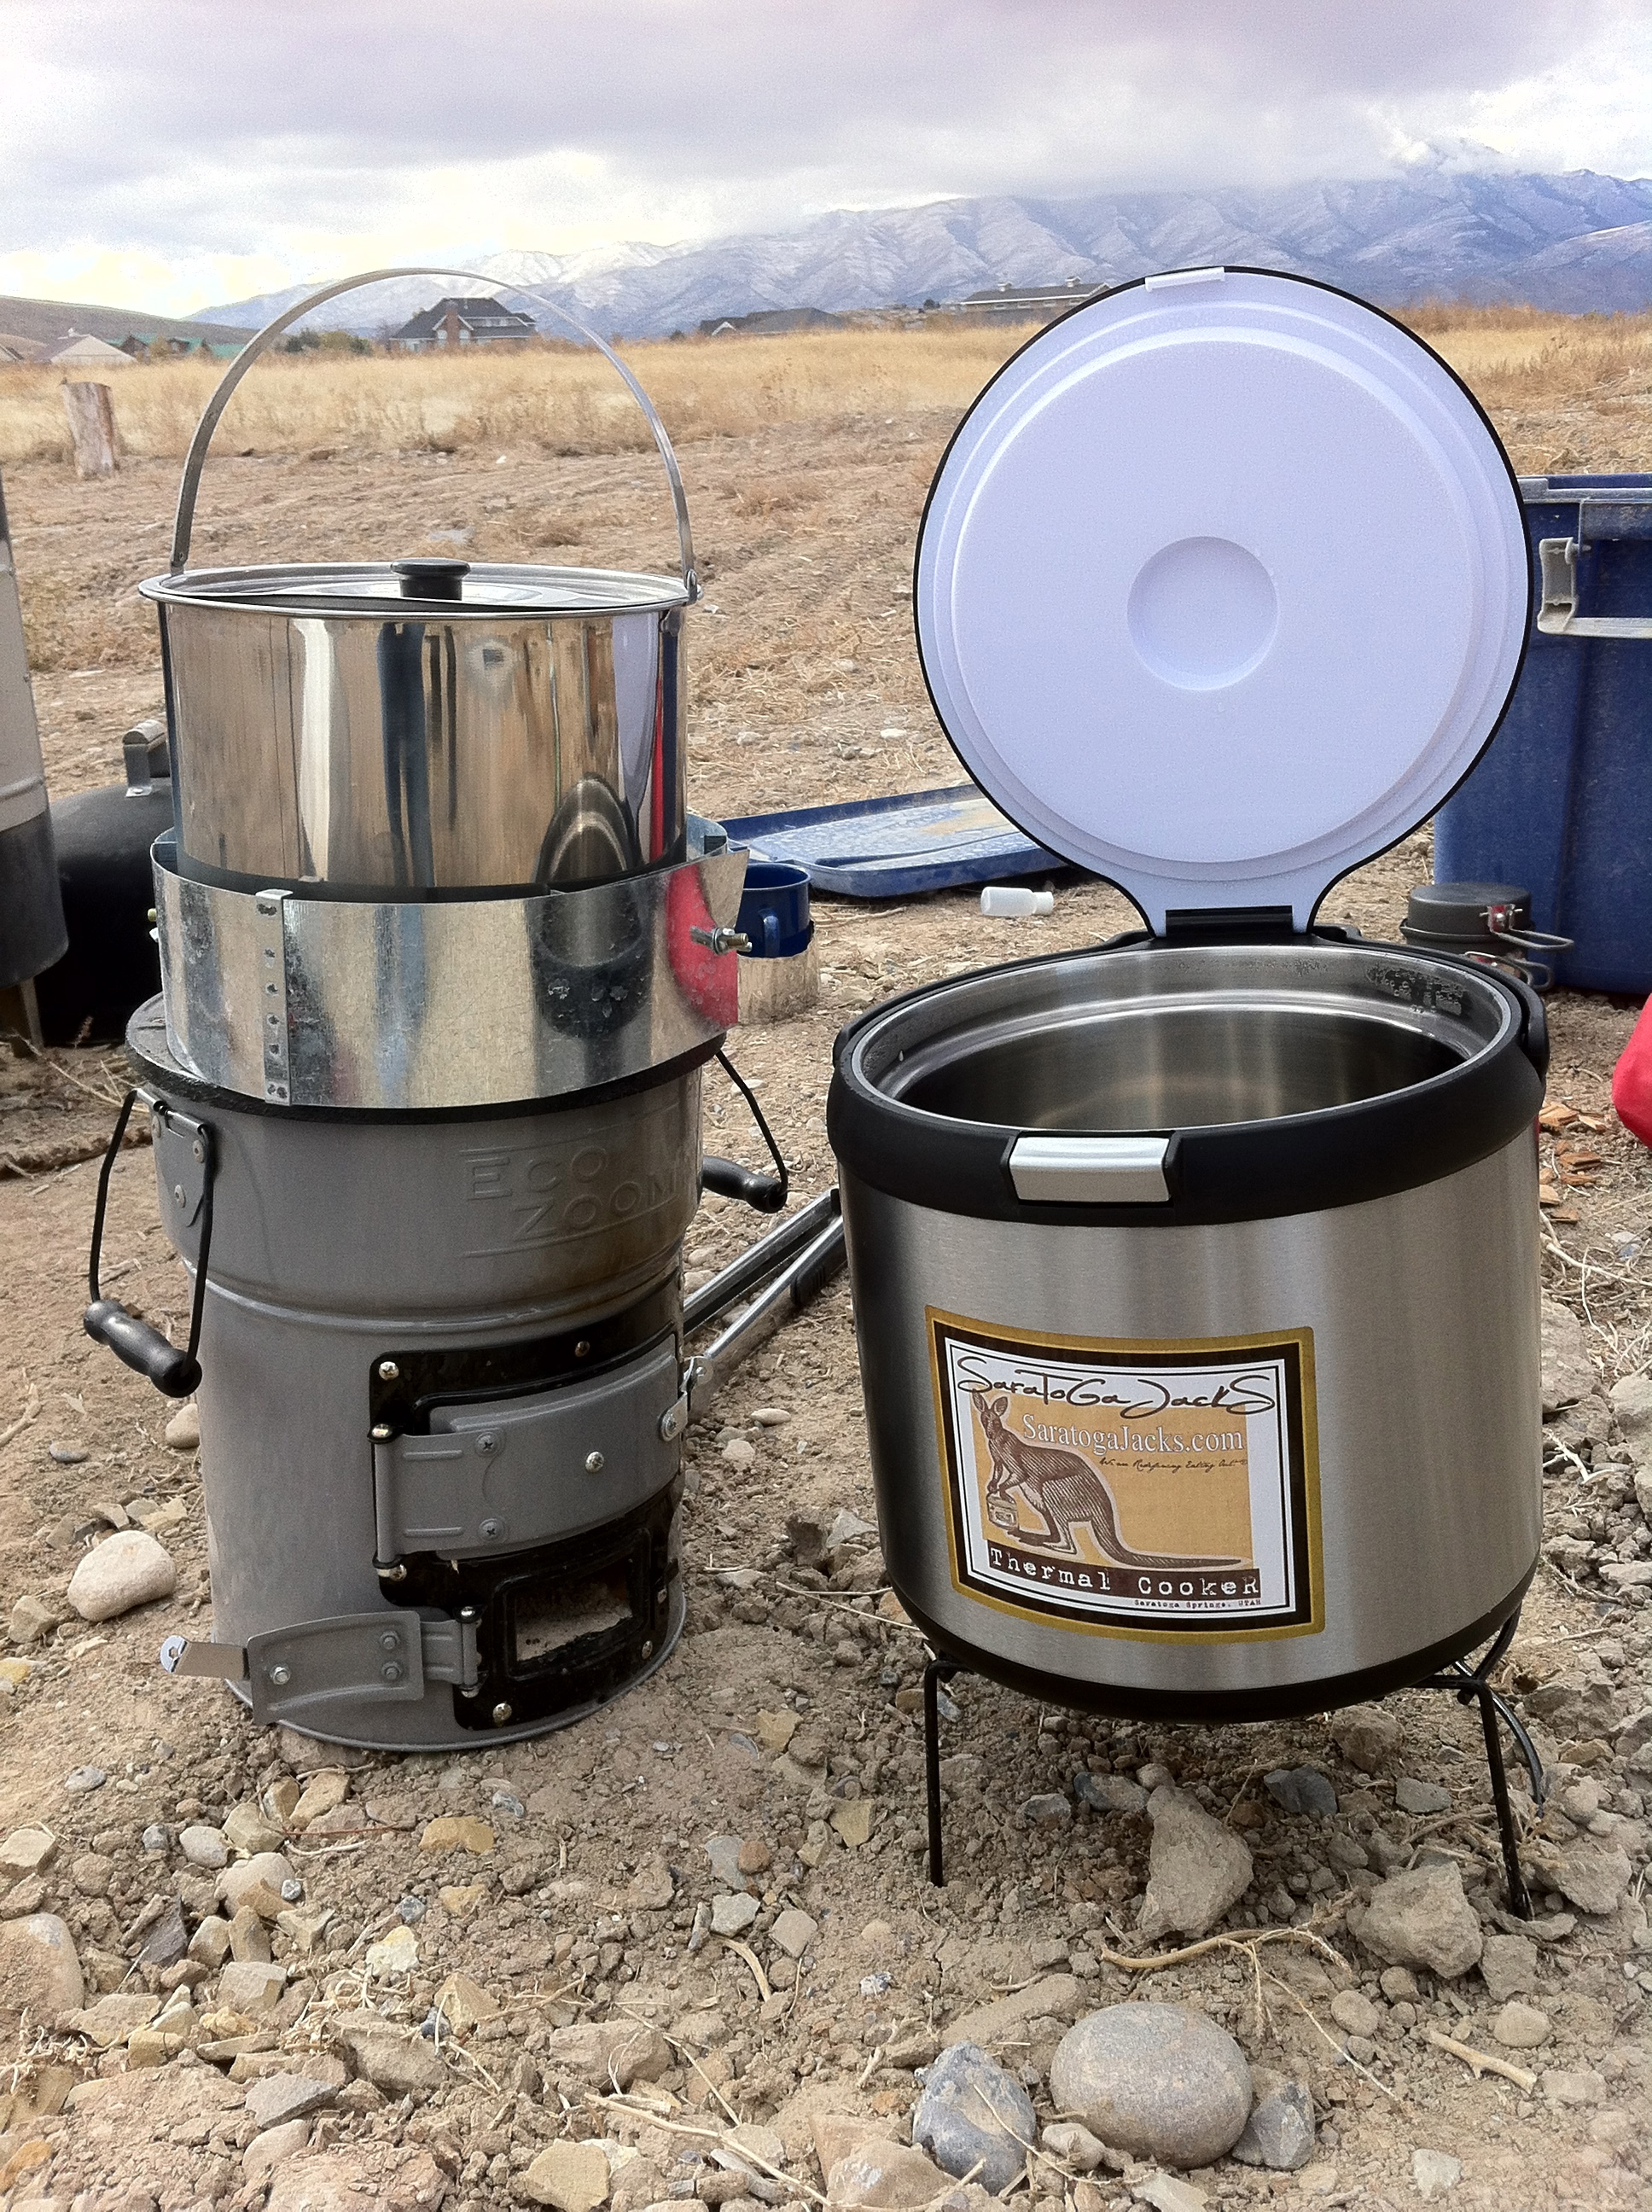 Wok Like A Prepper With A Volcano or a Rocket - Utah Preppers